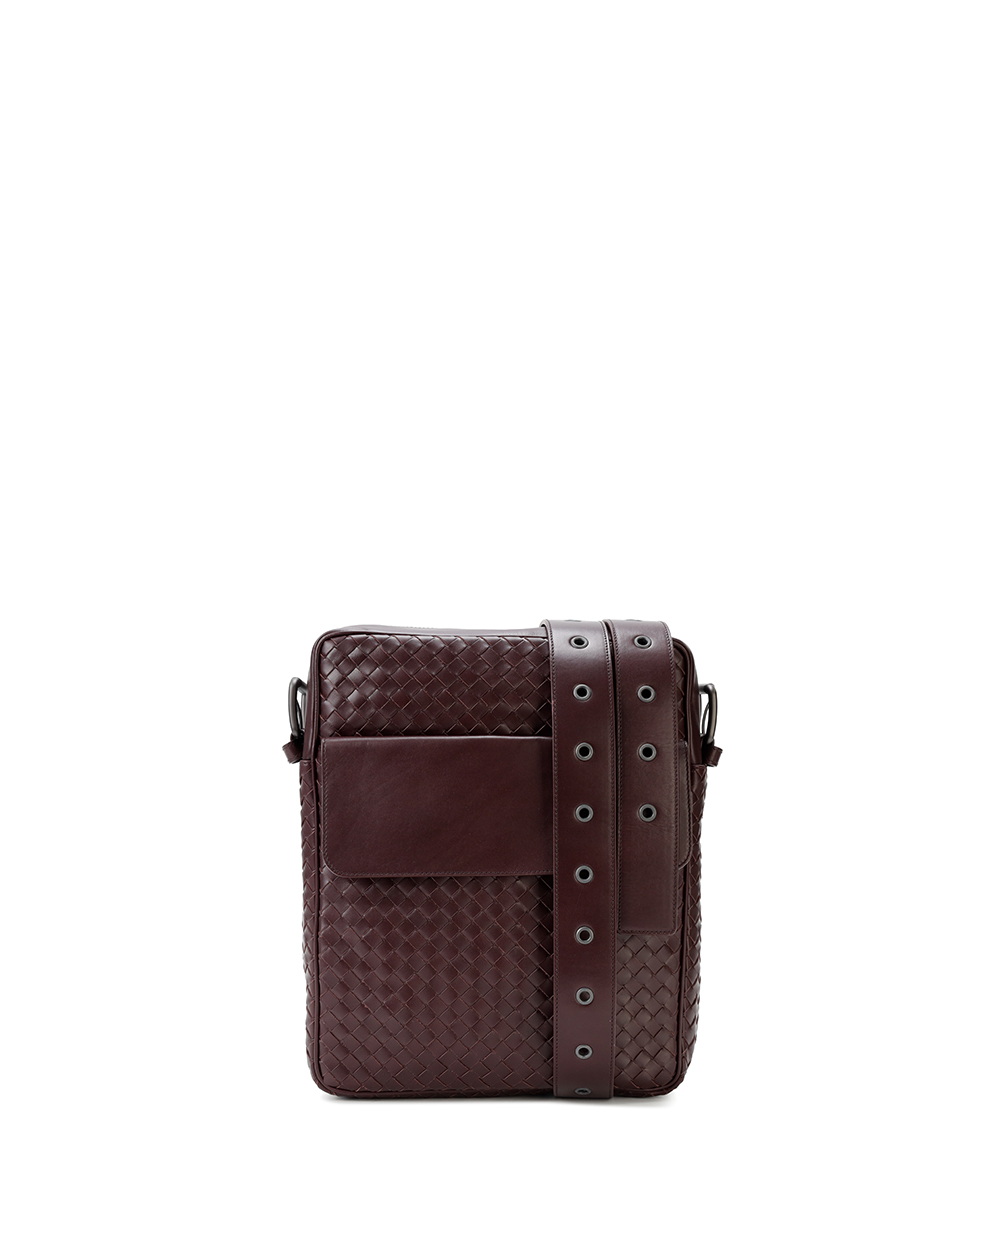 Woven Leather Cross-body Bag